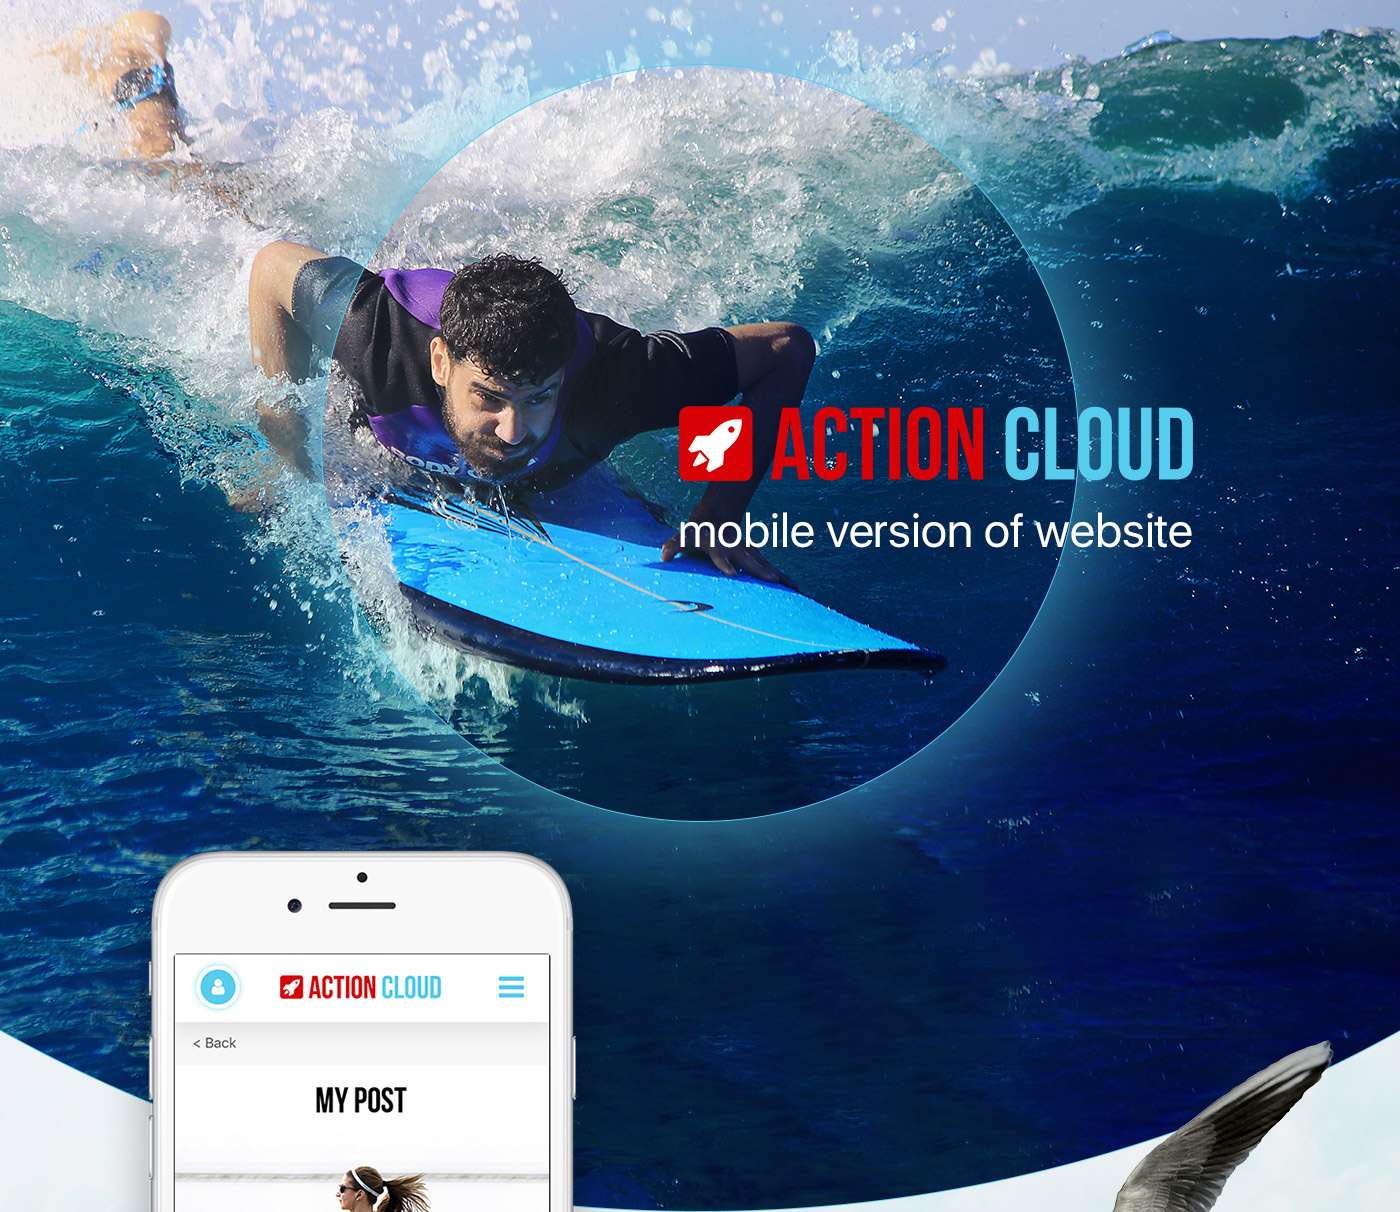 Дизайн сайта для социальной сети Action Cloud